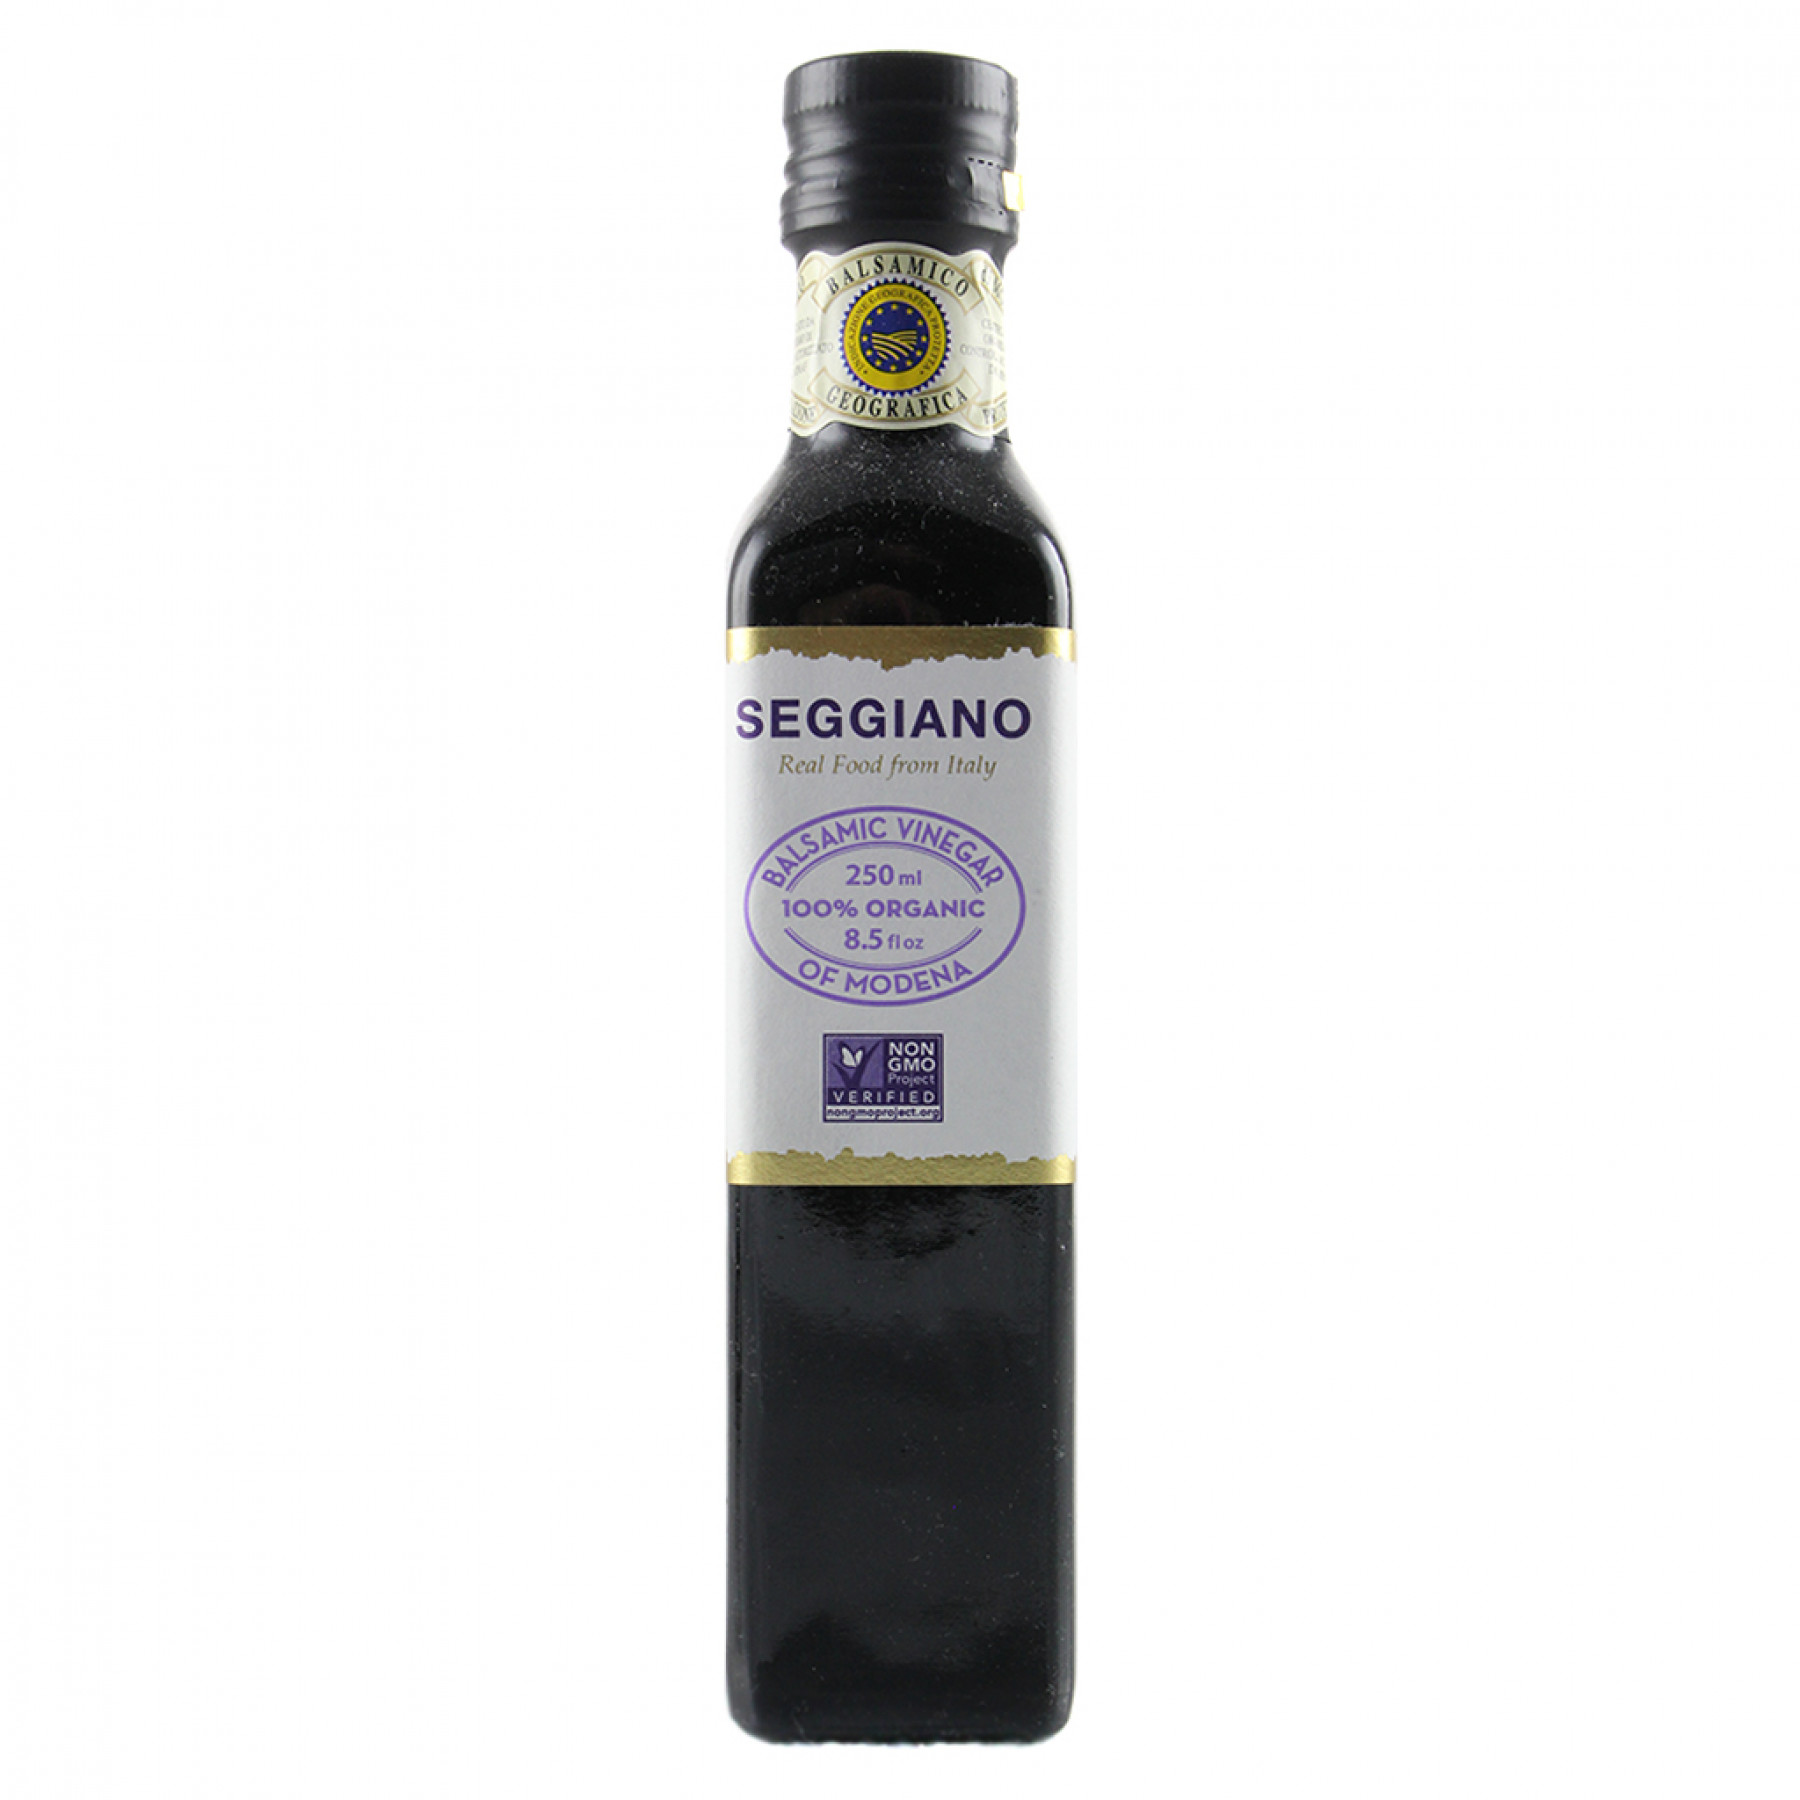 Seggiano Balsamic Vinegar 250mL